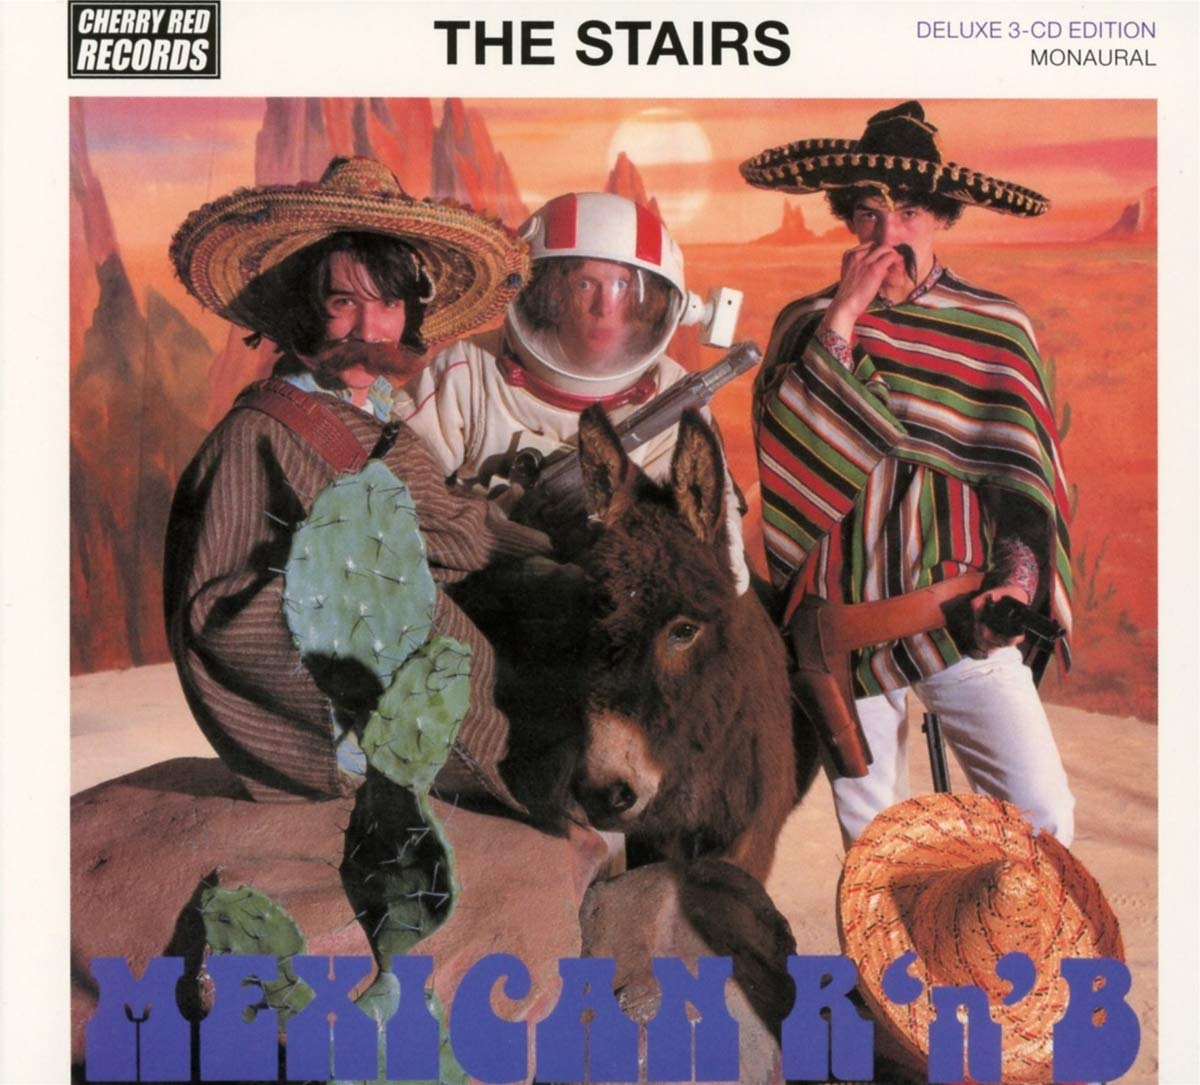 CD : The Stairs - Mexican R'n'b (Deluxe Edition, United Kingdom - Import)